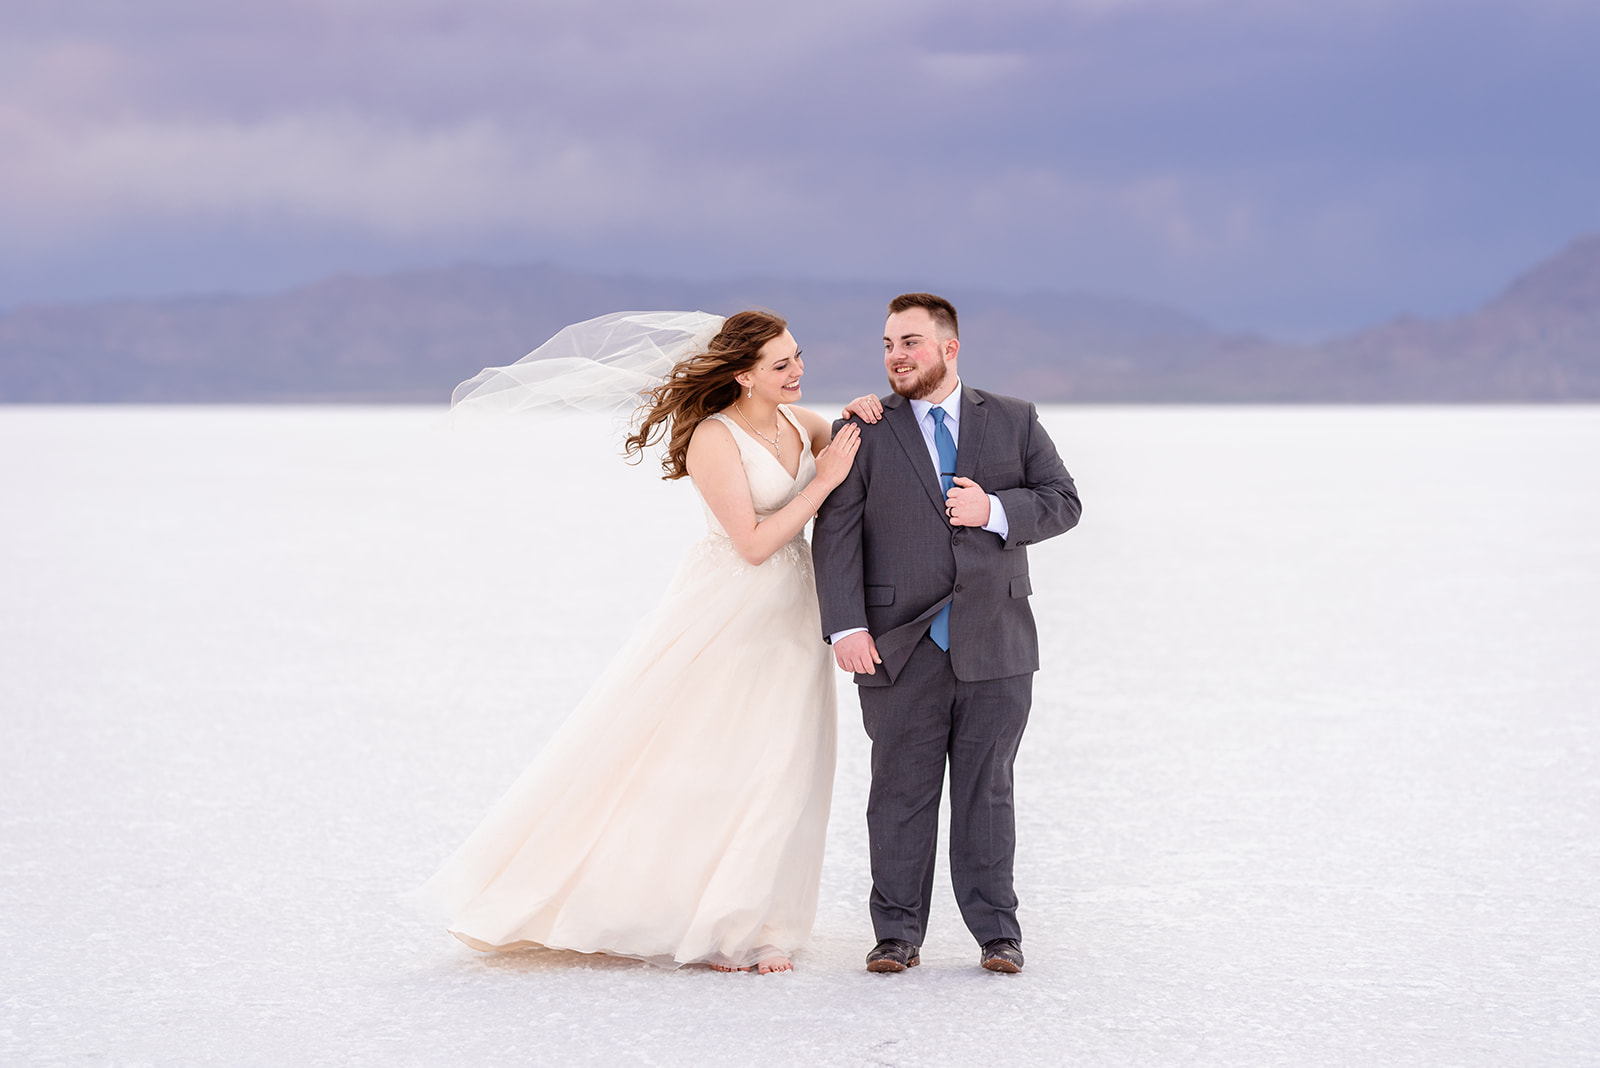 Bride and Groom portraits at the Bonneville Salt Falts in Utah. Grey suit and blue tie combo. Ivory and Gold wedding dress. Taken by Coley Cook Photography.